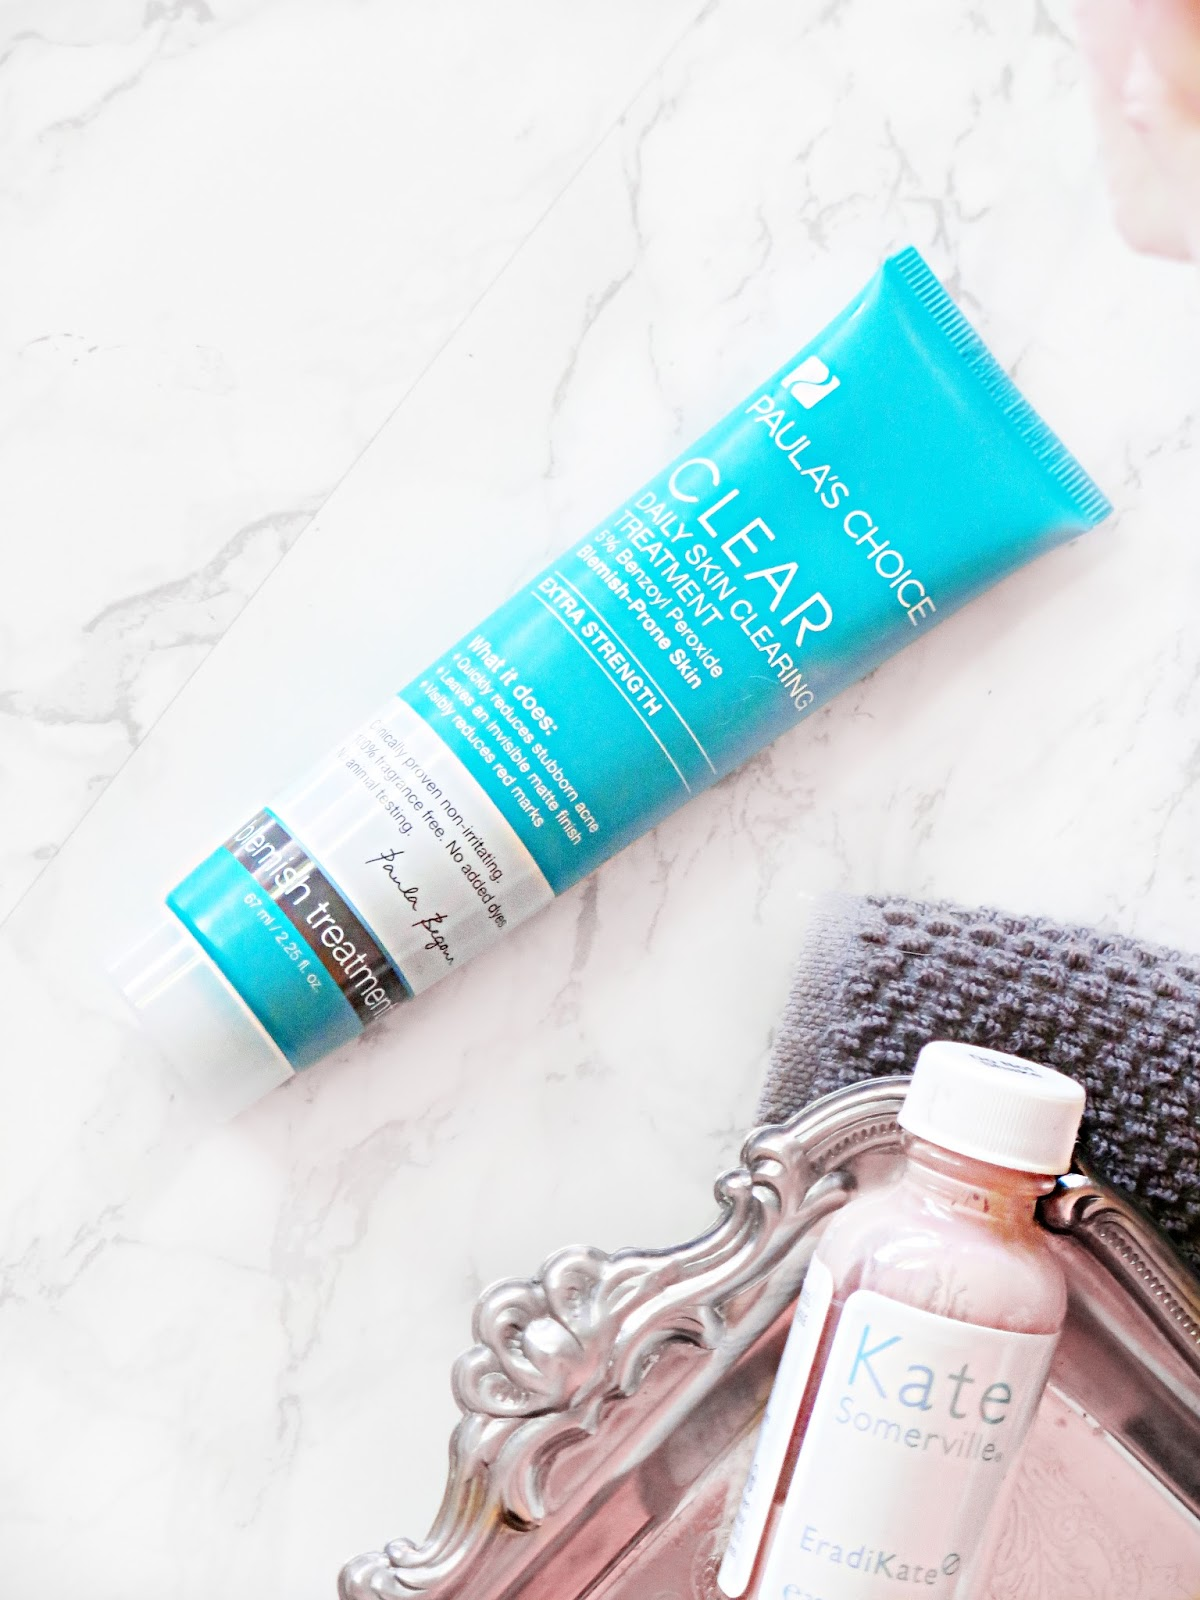 Blemish Busters   My Top 3 Acne Fighting Spot Treatments   Reviews & Comparisons   labellesirene.ca